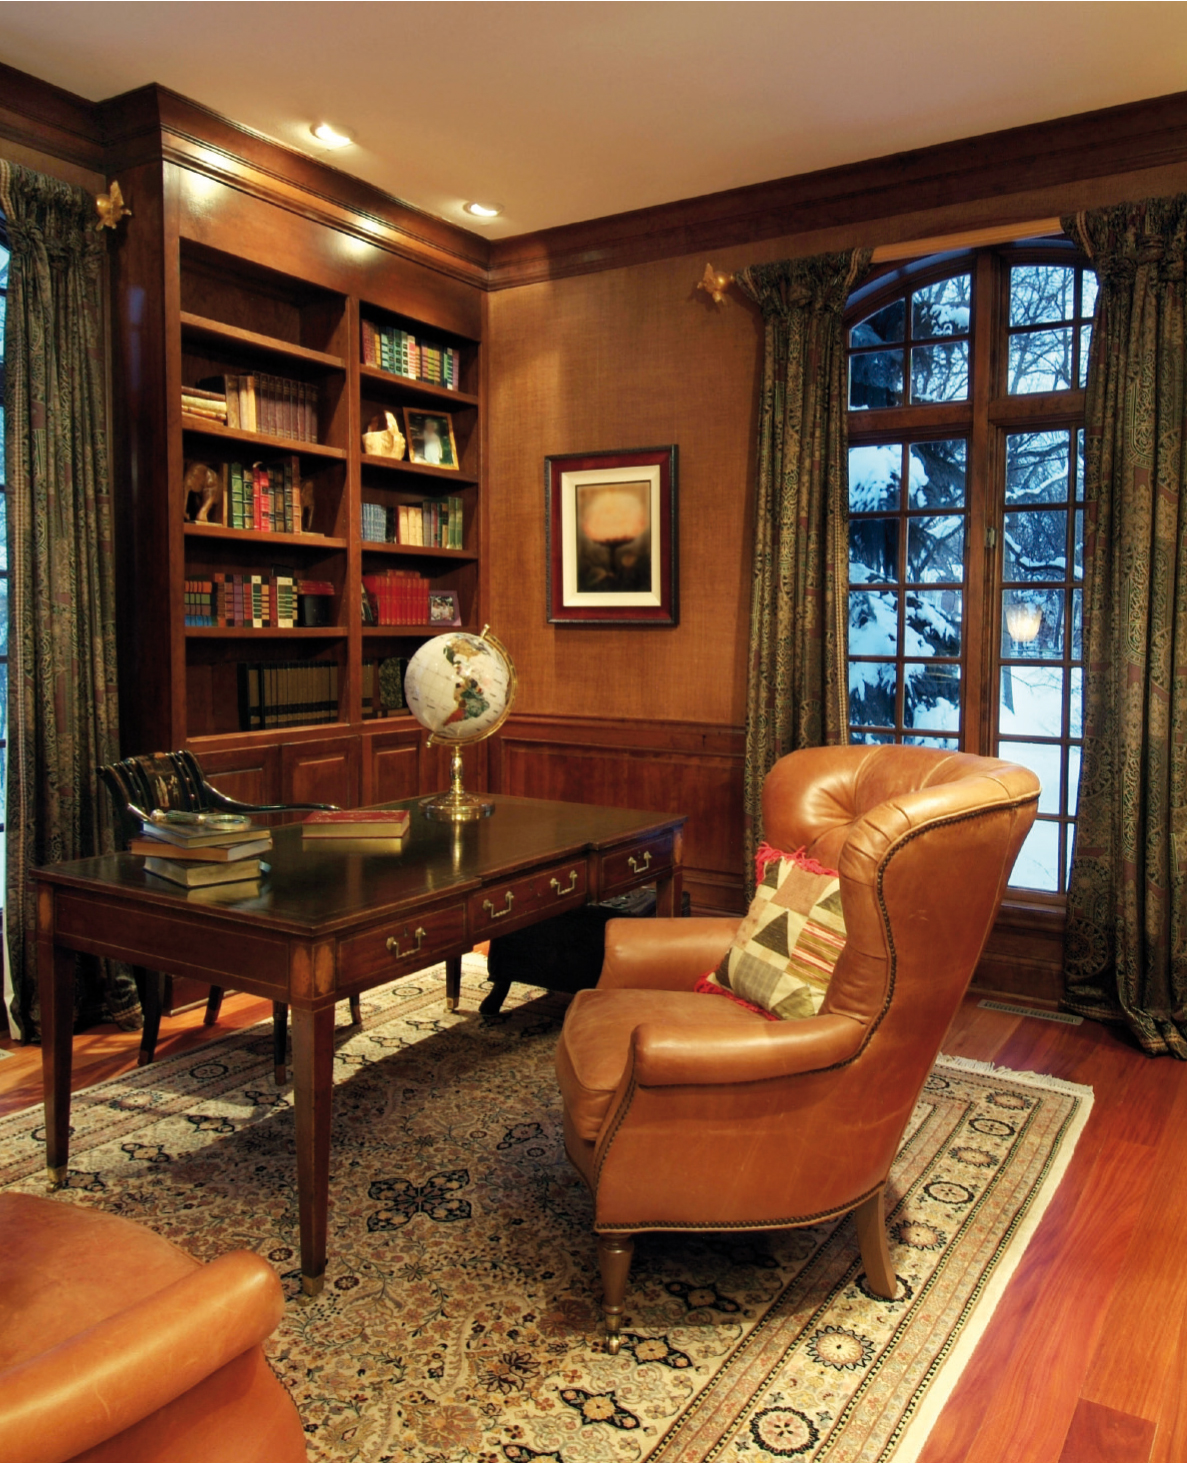 Small Office Den Decorating Ideas: The Gentleman's Room: Creating A Masculine Aesthetic